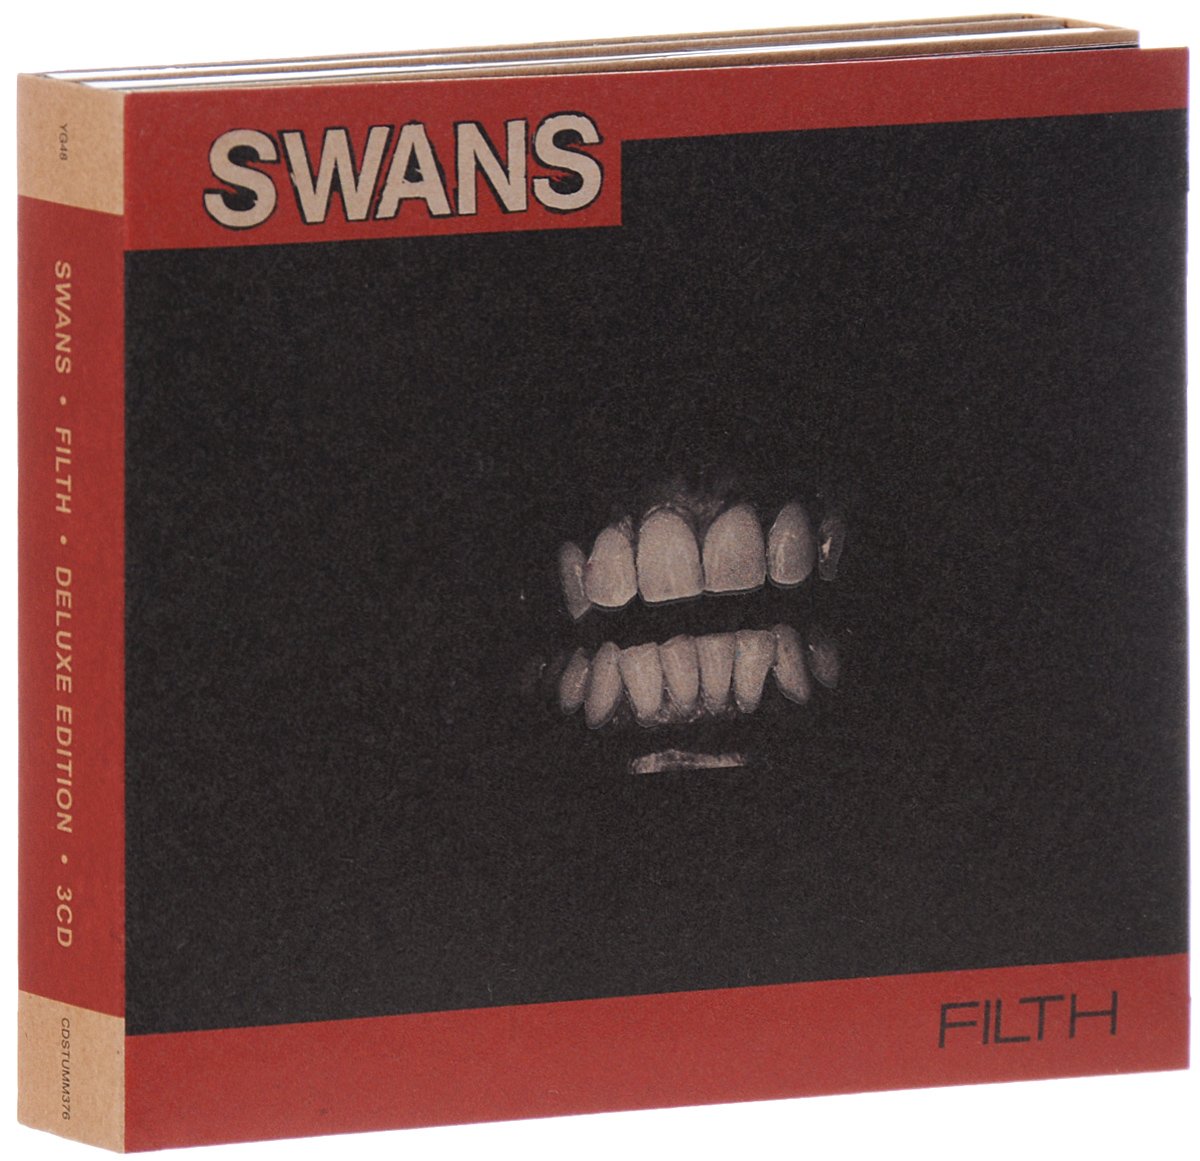 Swans Swans. Filth. Deluxe Edition (3 CD) линолеум ideal voyage ron 3069 3 5м